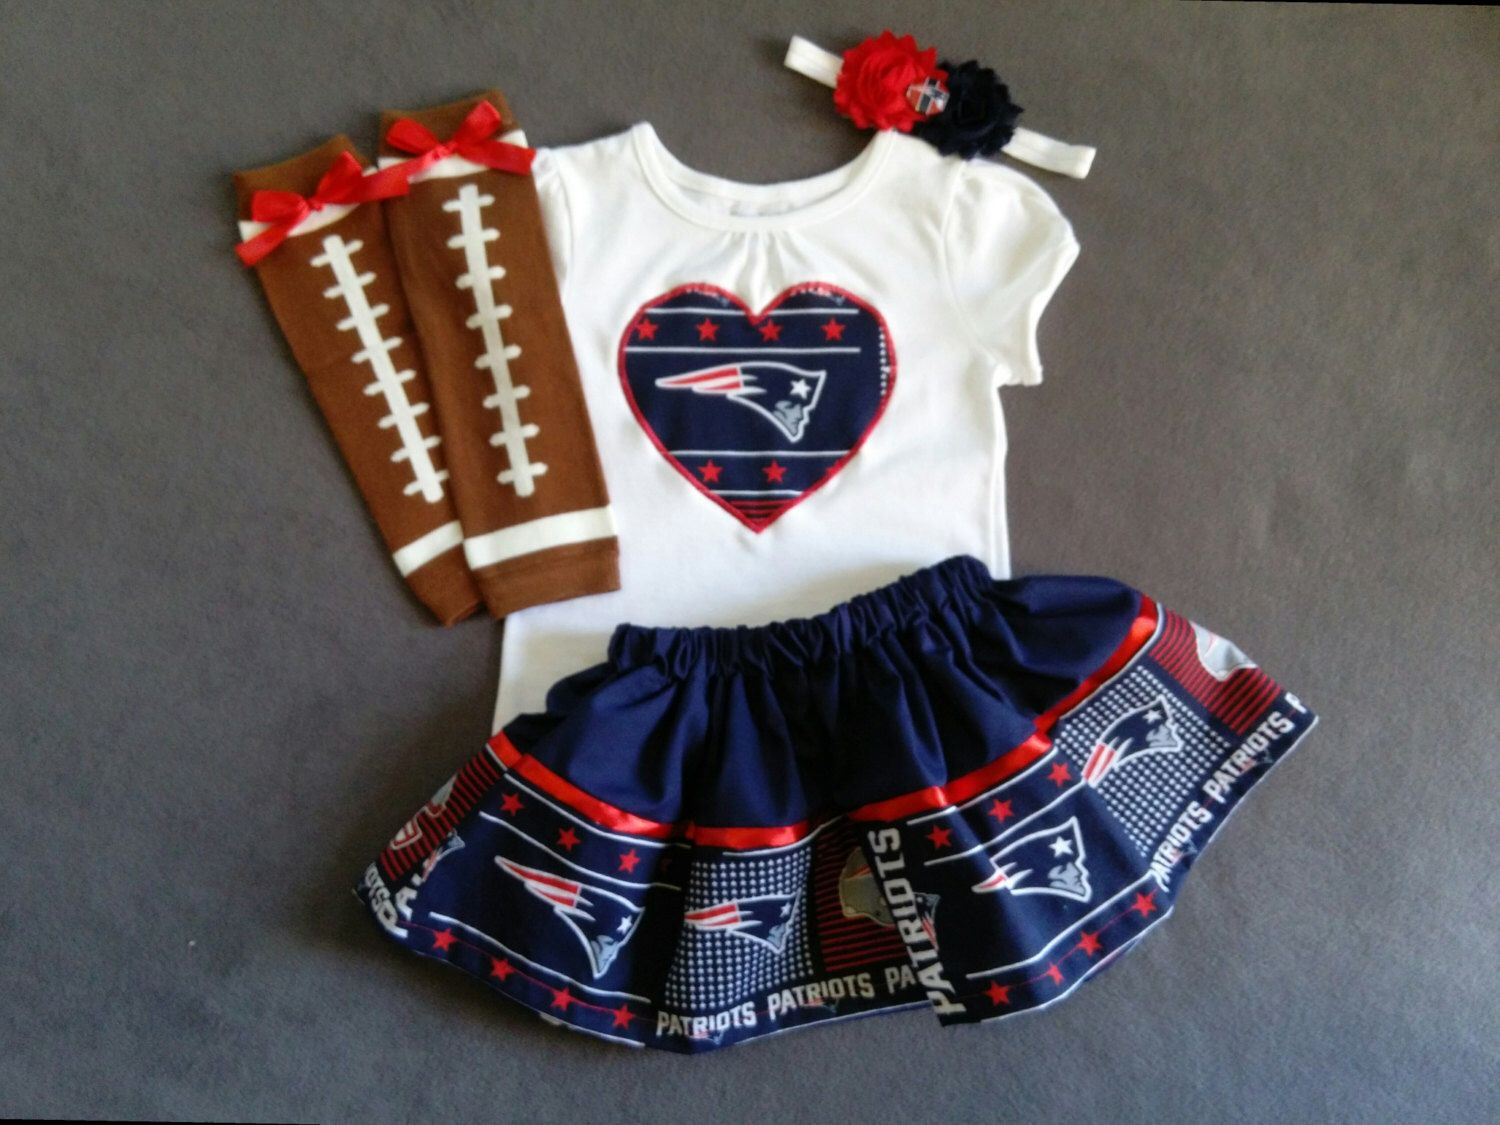 New England Patriots Inspired Baby Girl 4 Piece Outfit Skirt Shirt Headband Leg Warmers Baby Girl Clothes Patriotic Baby Clothes Girl Onesies